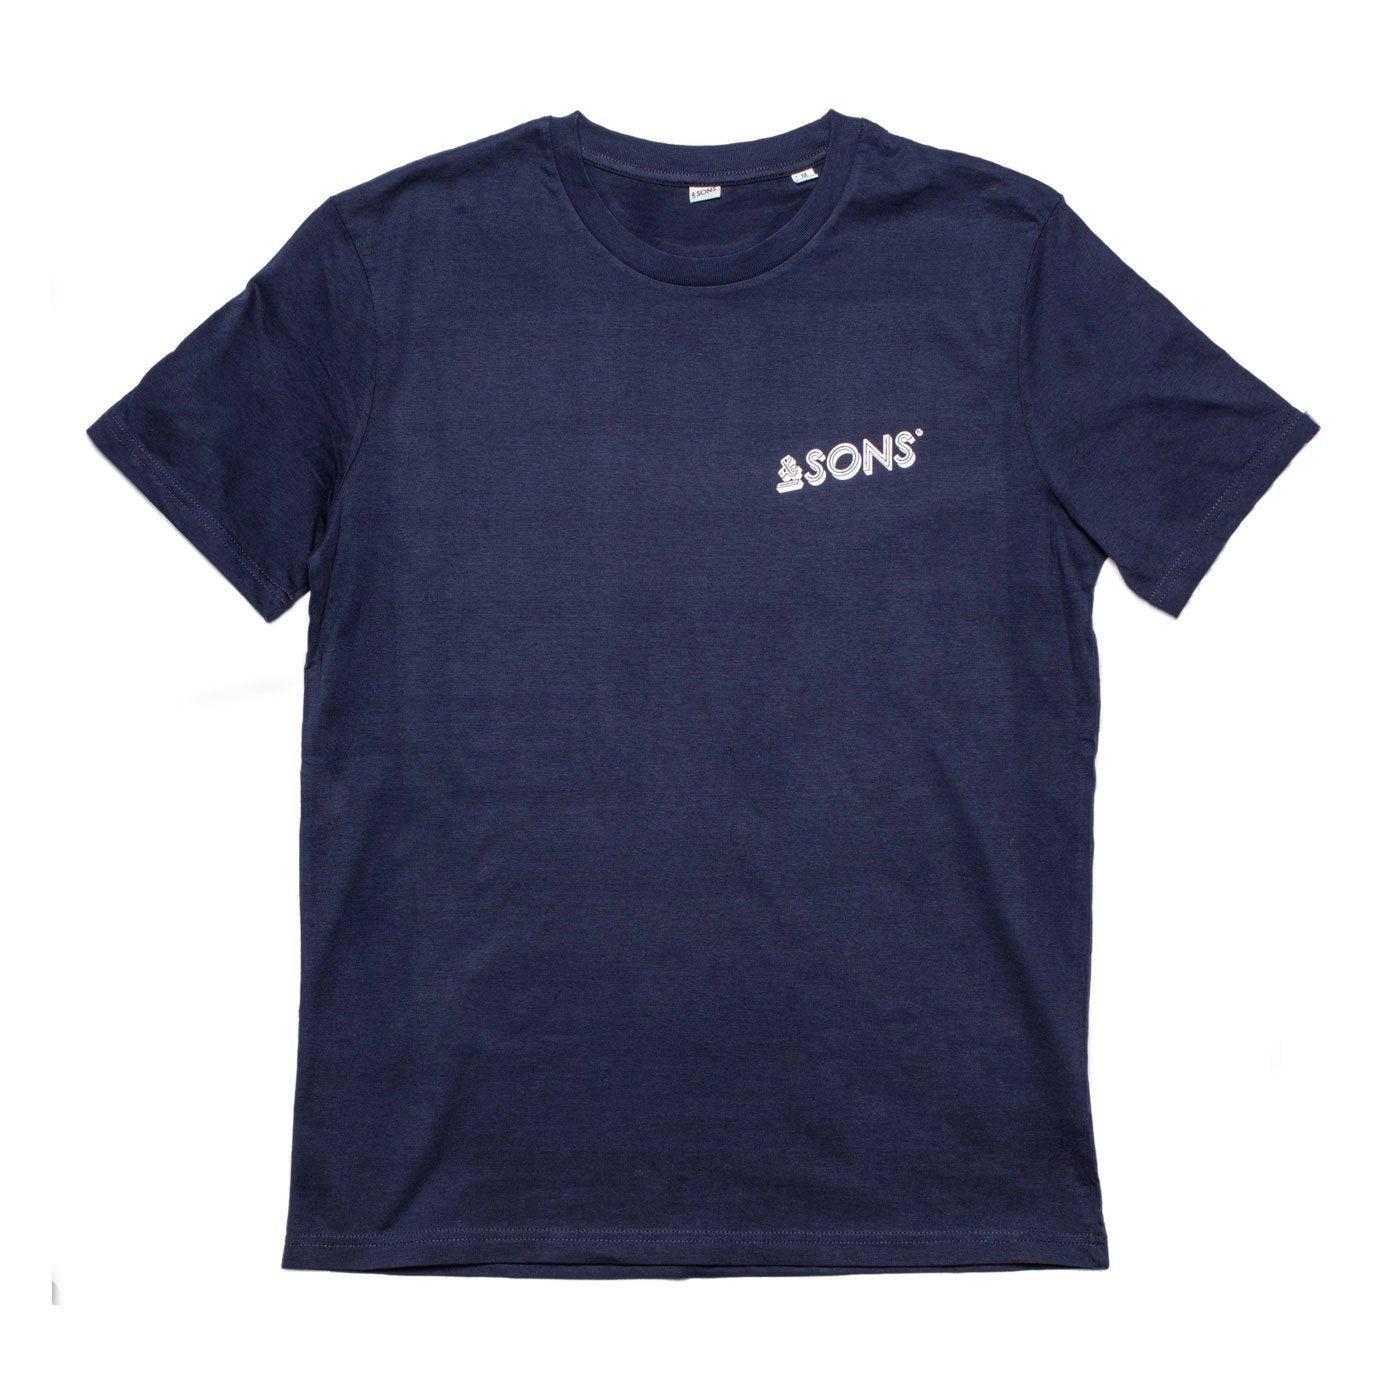 &SONS | Mens T-Shirt | 100% Cotton Navy Vintage Hand-Printed T-Shirt